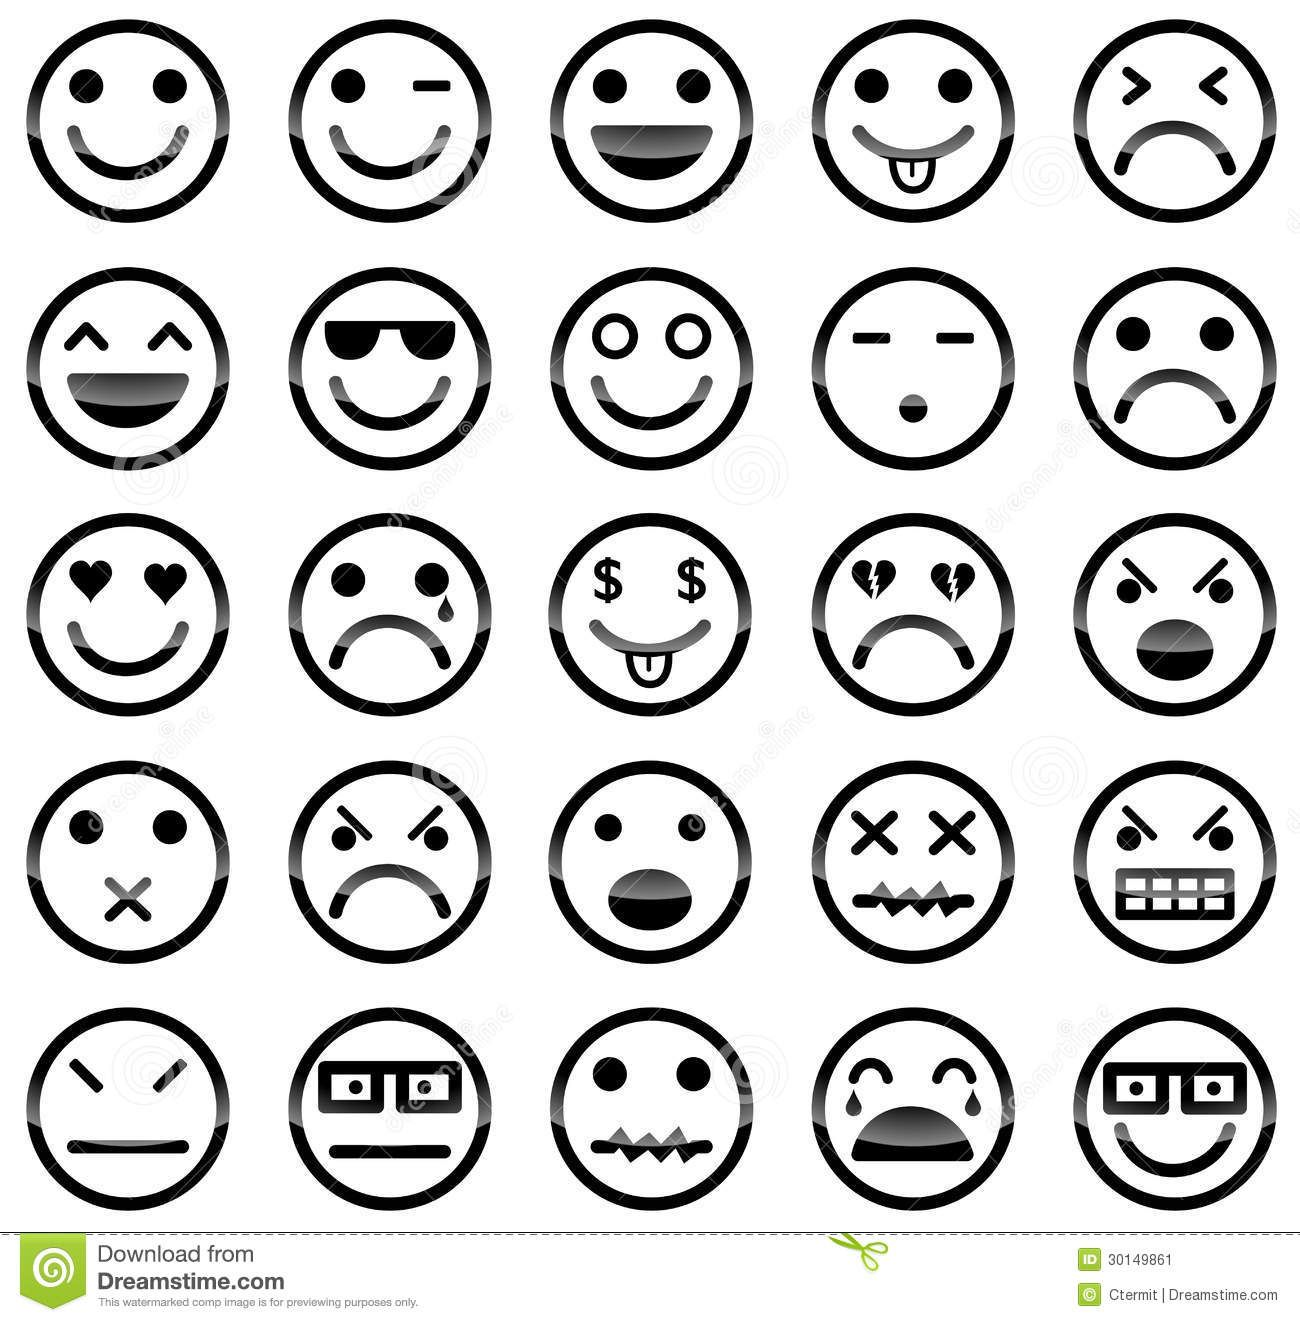 Black And White Emojis To Color Google Search Emoji Coloring Pages Emoji Faces Emoji Drawings